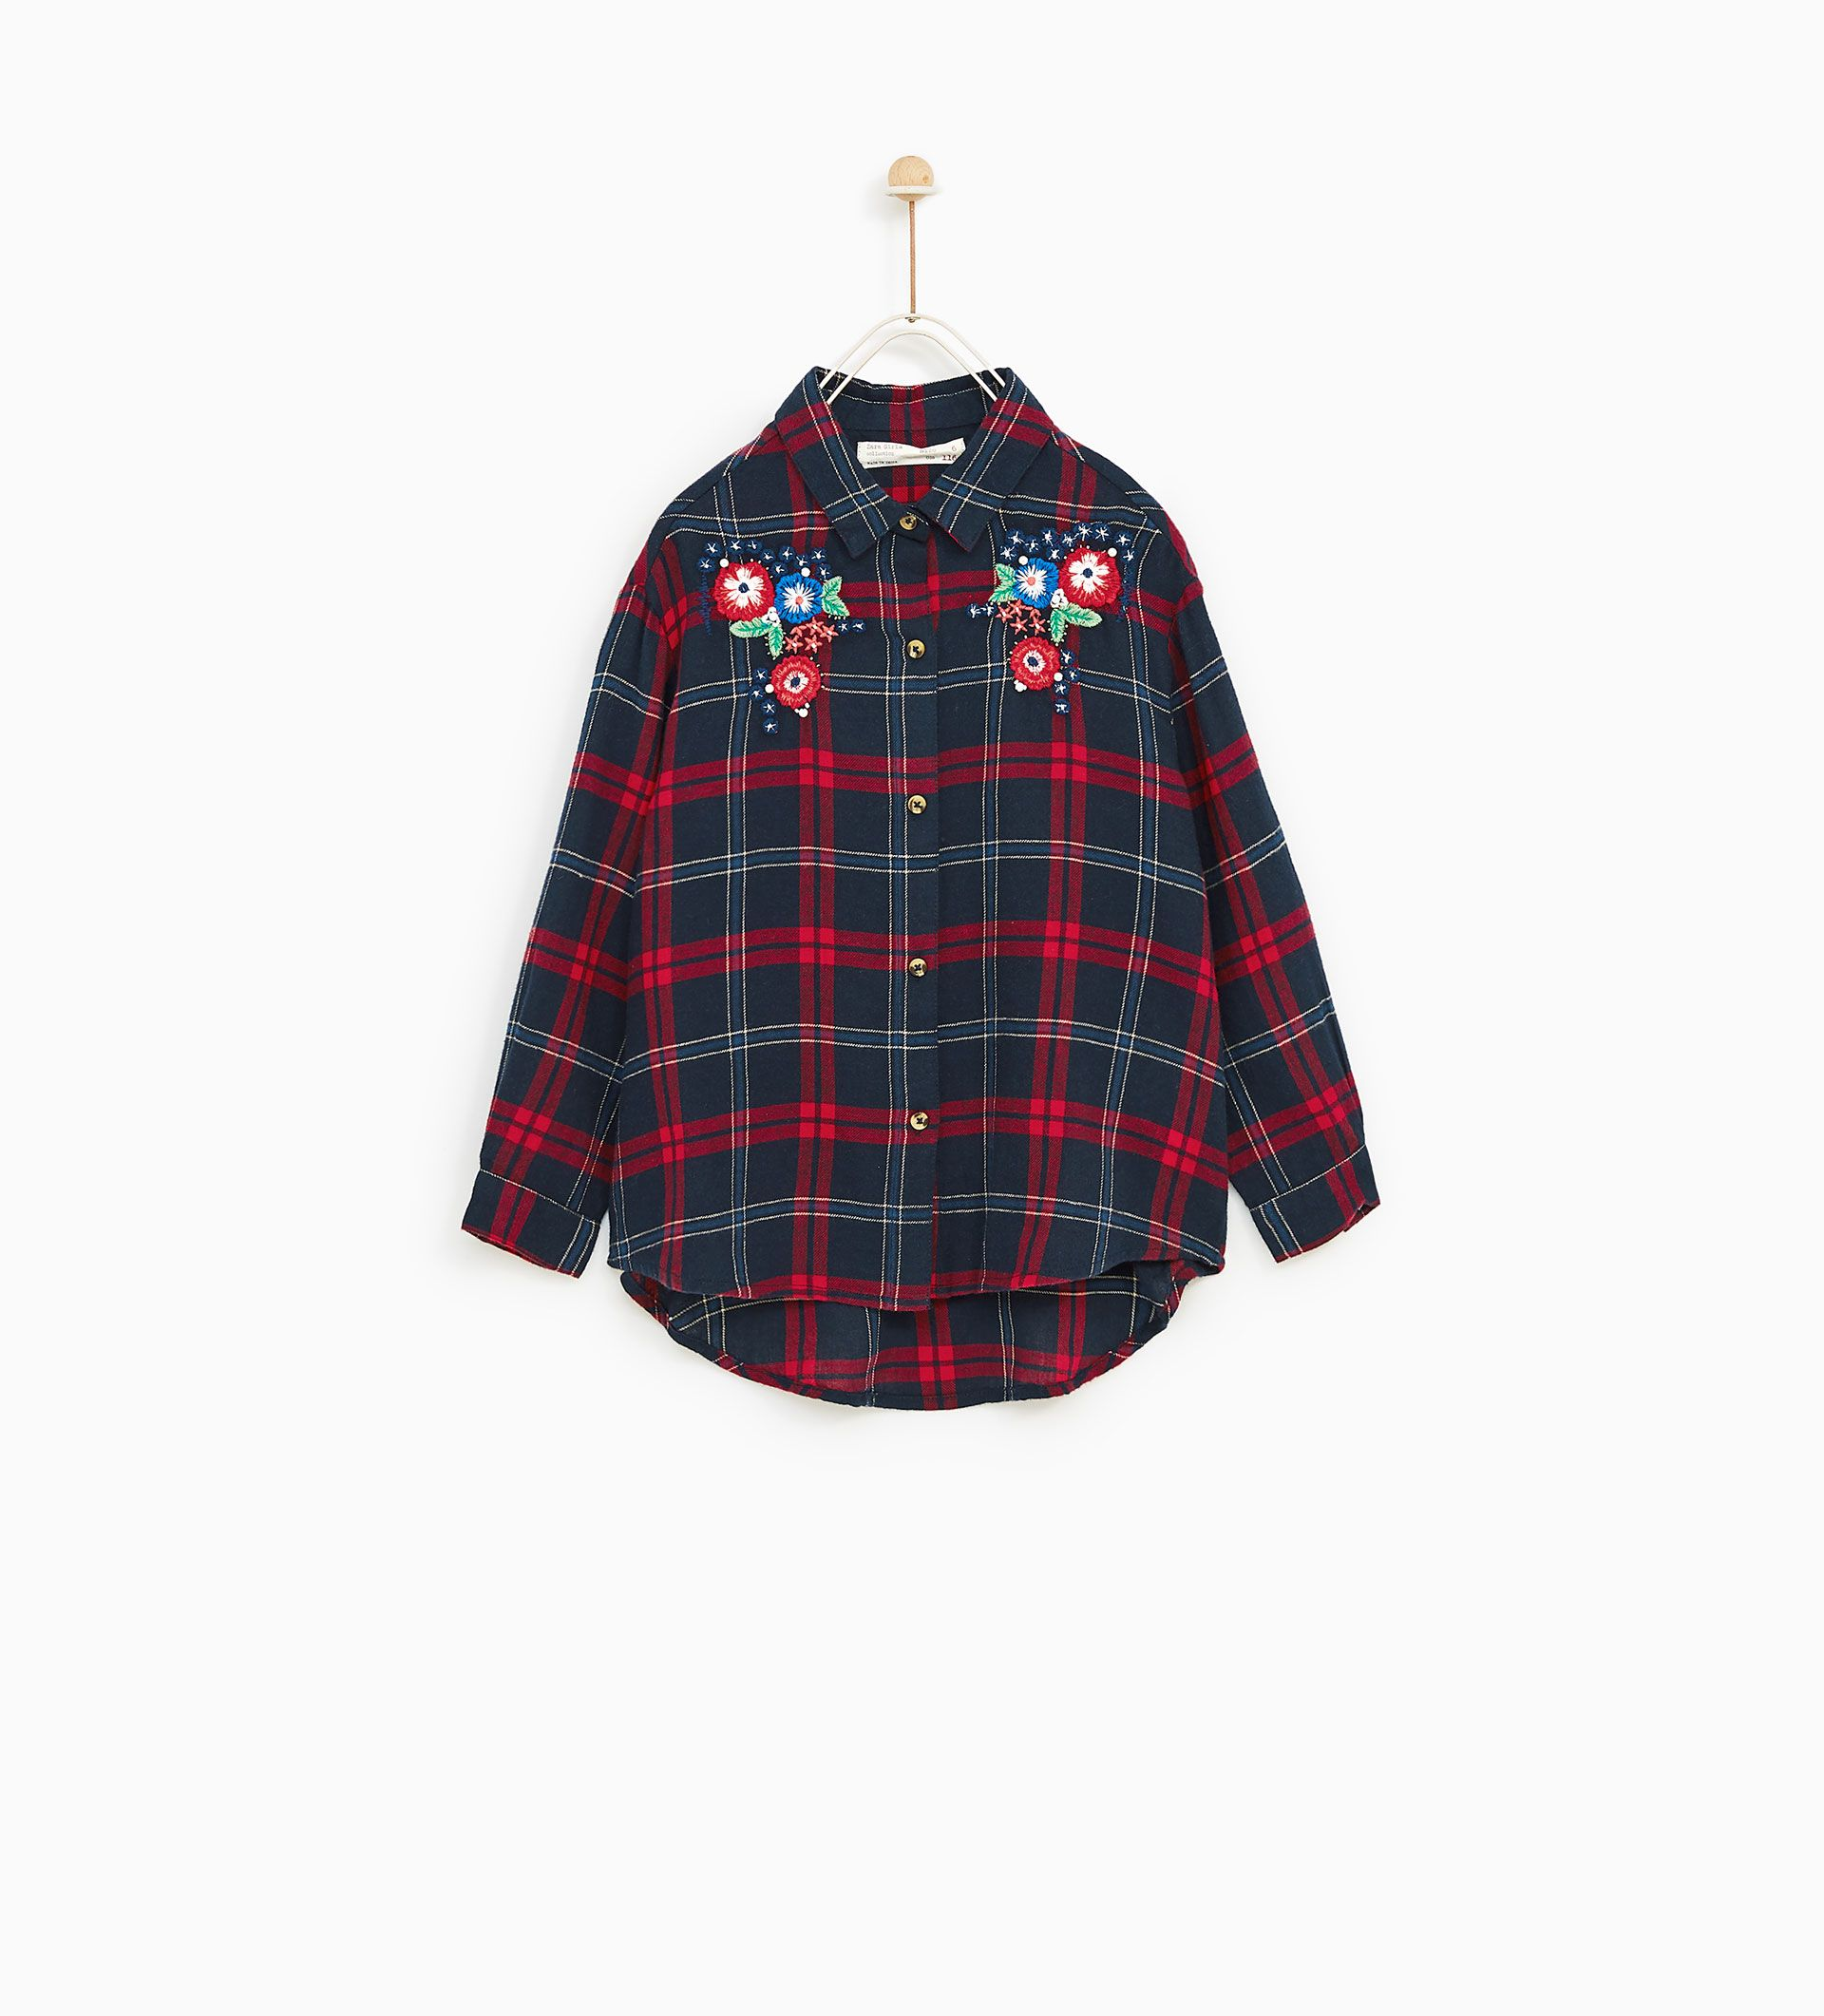 80b8ae61088 Image 1 of CHECKED SHIRT WITH EMBROIDERED FLOWERS from Zara CHECKED SHIRT  WITH EMBROIDERED FLOWERS -